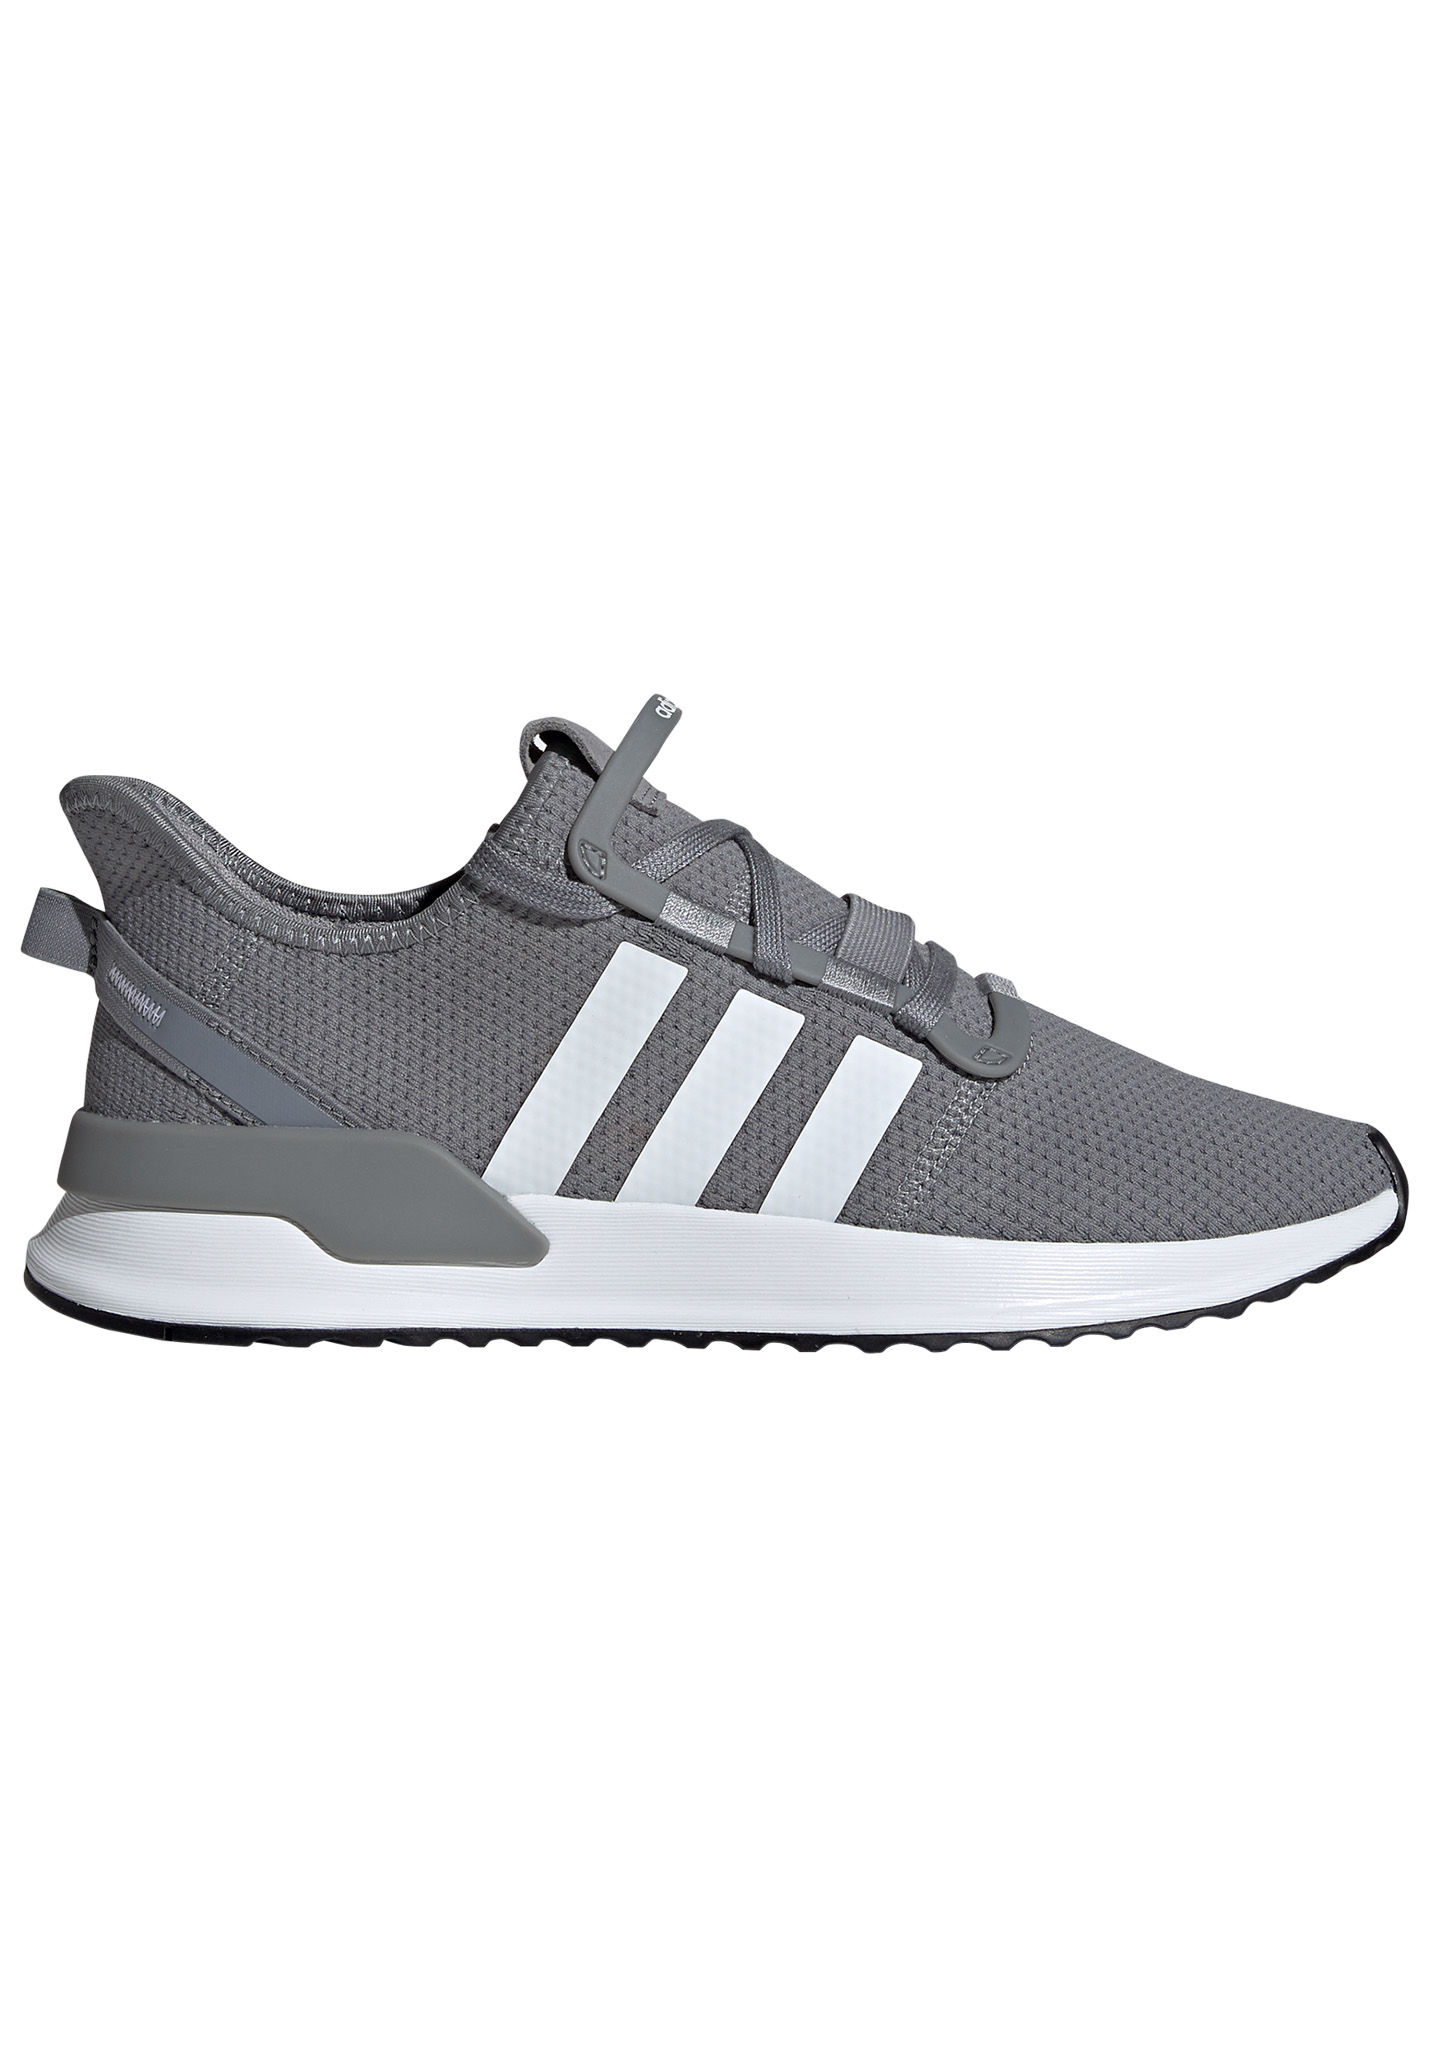 59530fb3f7 ADIDAS ORIGINALS U_Path Run - Baskets pour Homme - Gris - Planet Sports